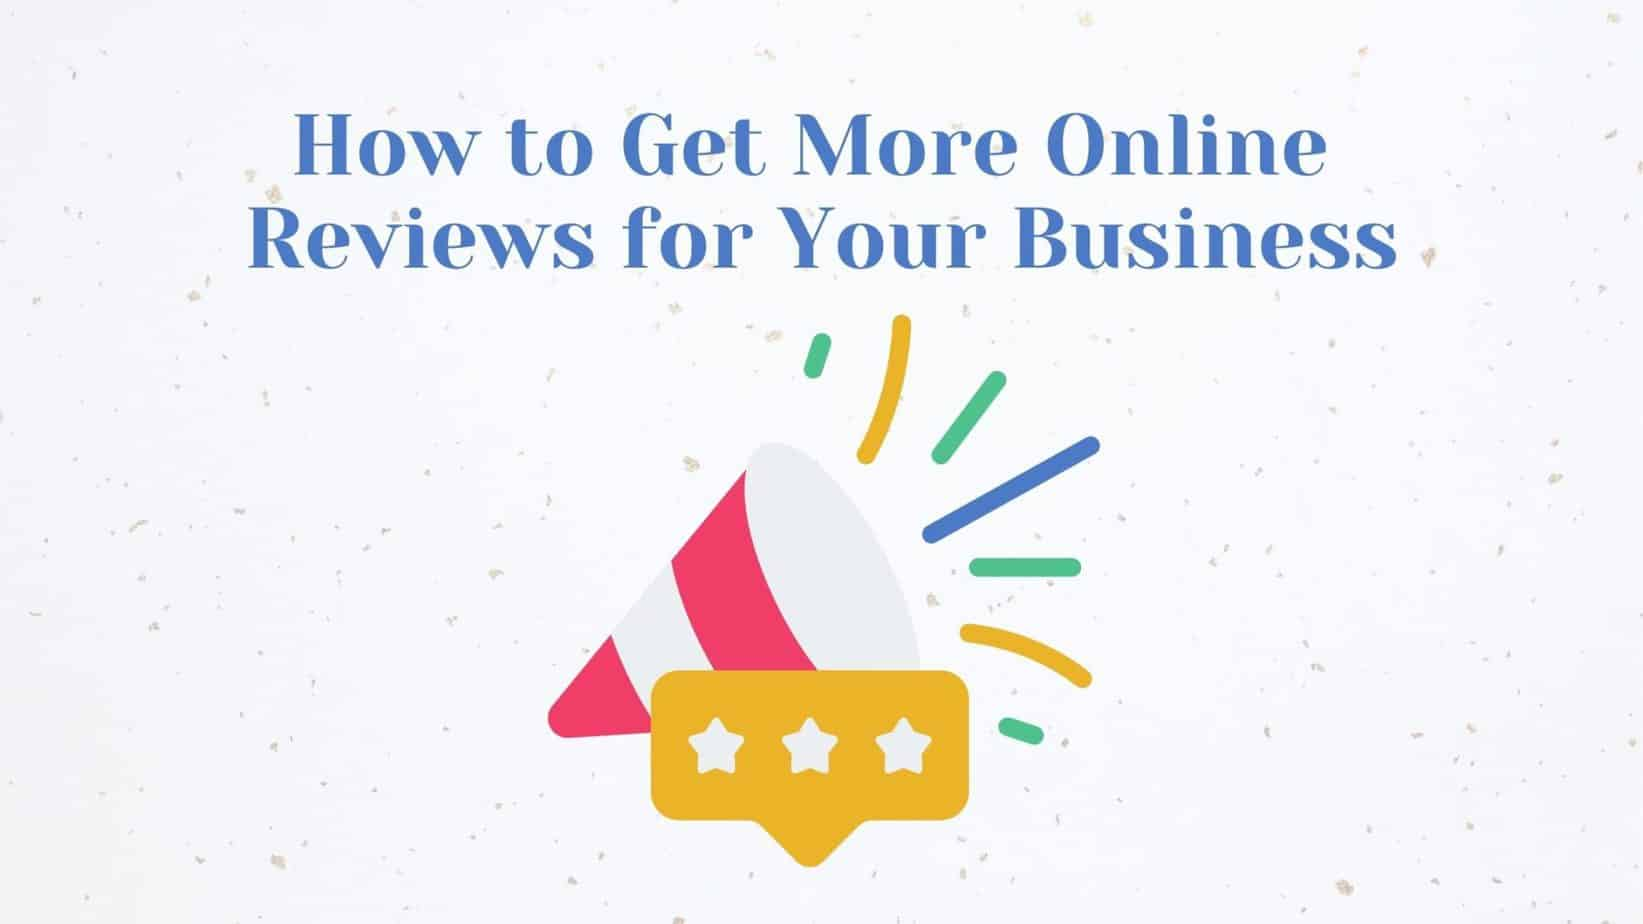 How to Get More Online Reviews for Your Business